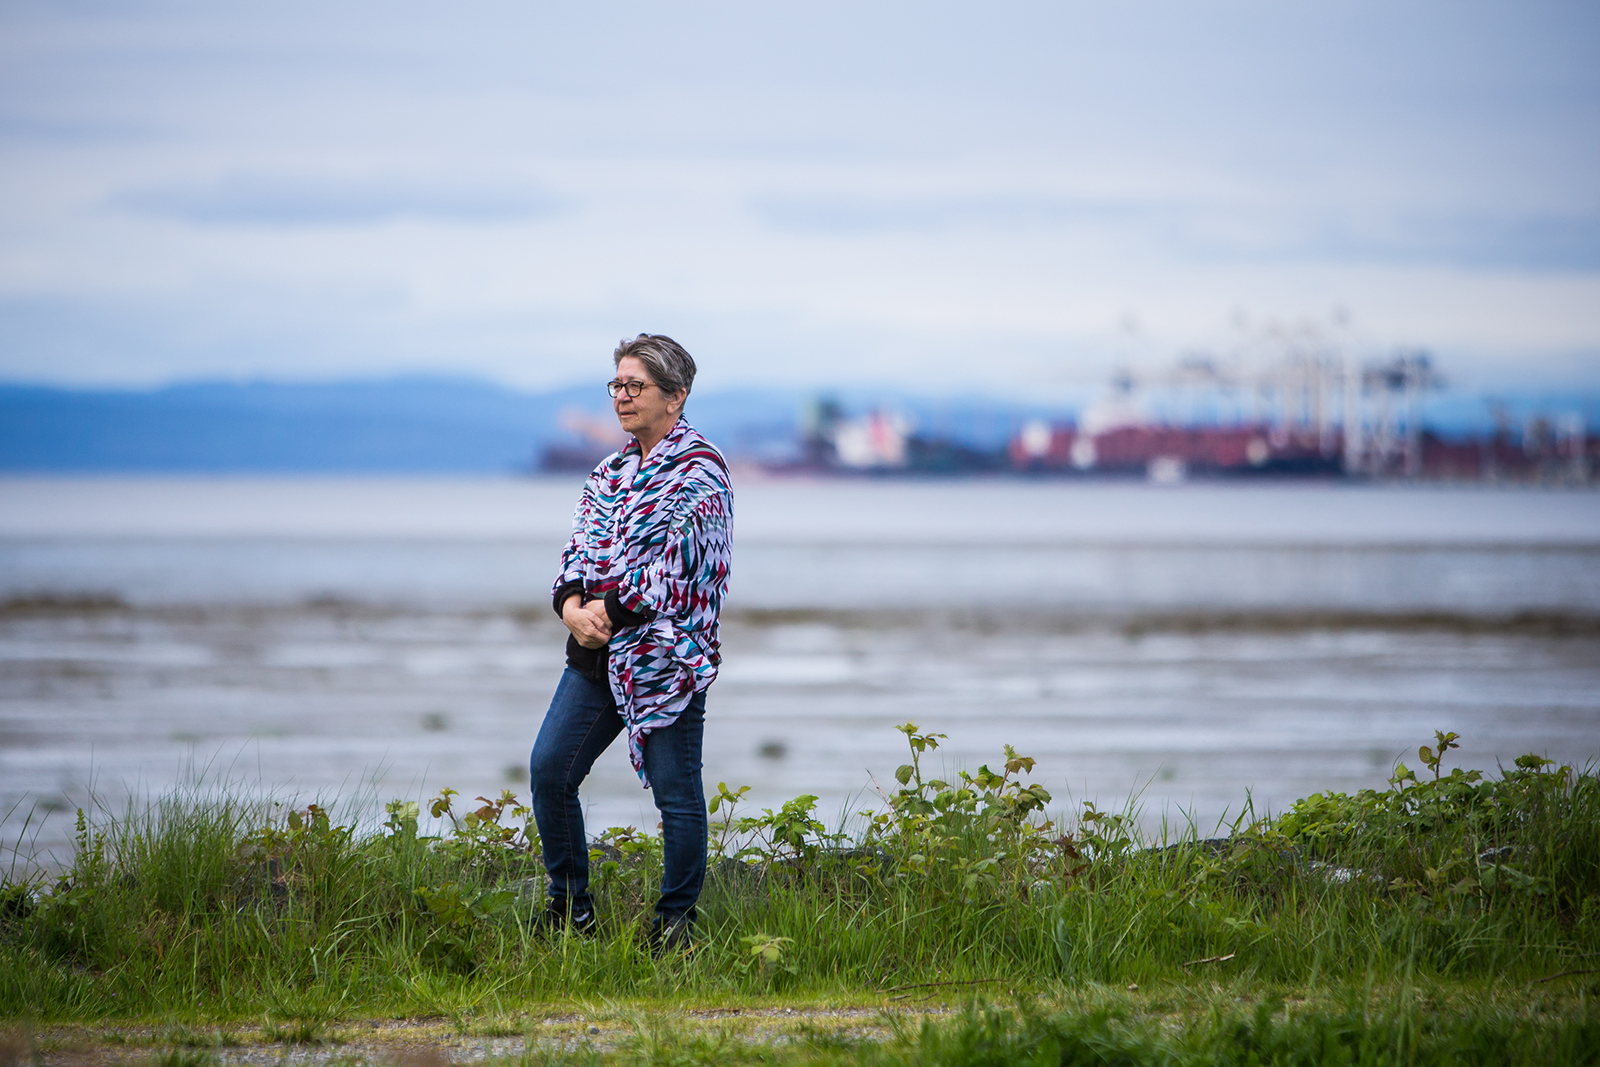 Elder Barb Joe is pictured on the banks of the Tsawwassen shores